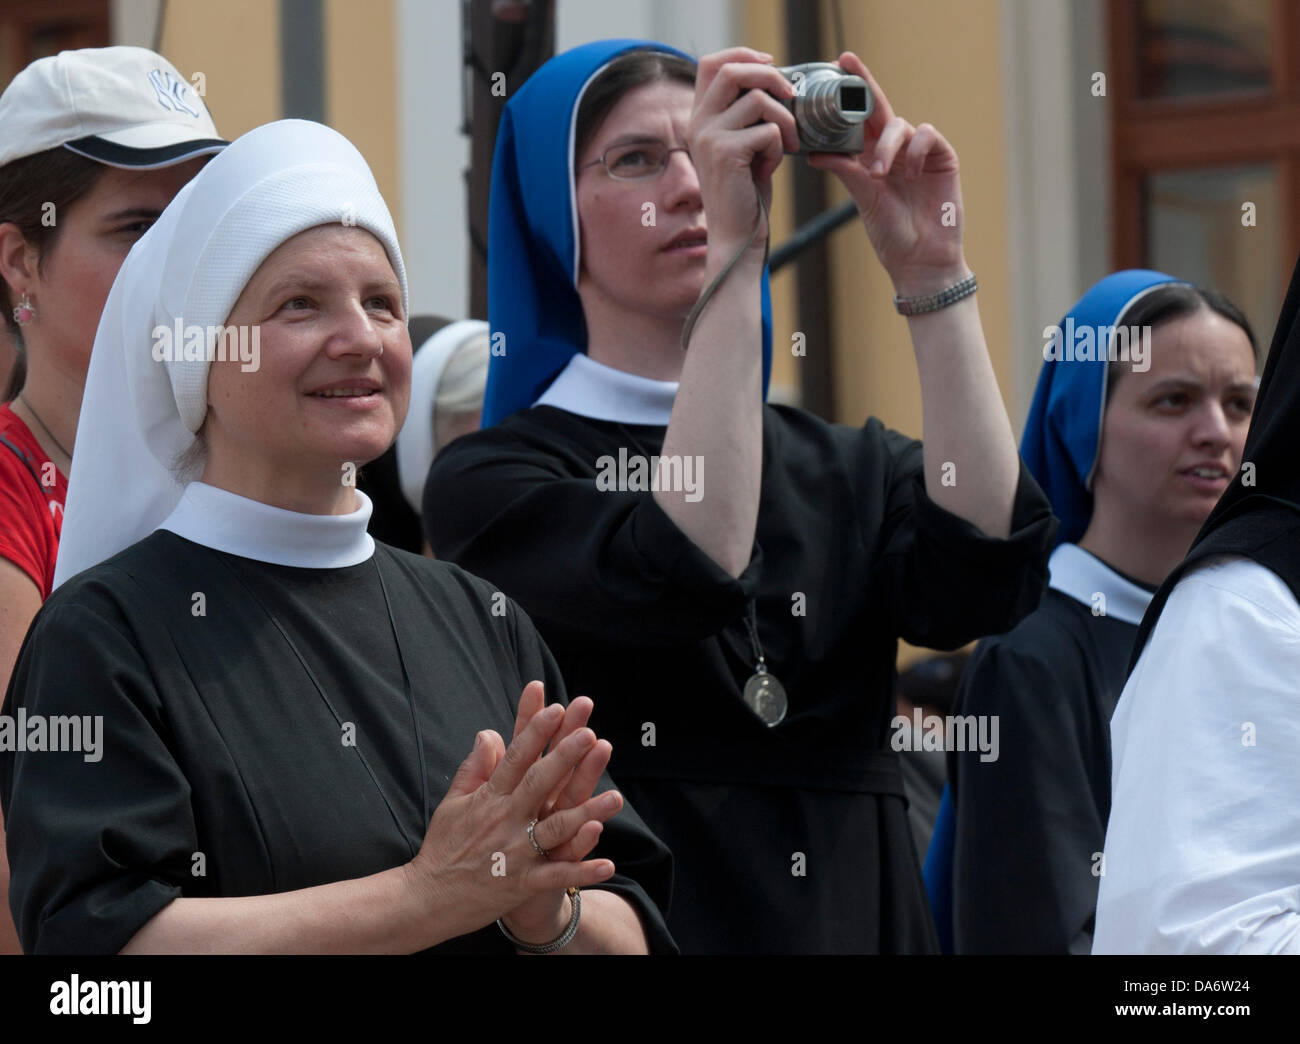 A nun takes pictures as thousands of pilgrims celebrate the 1150th anniversary of the arrival of Cyril and Methodius, - Stock Image